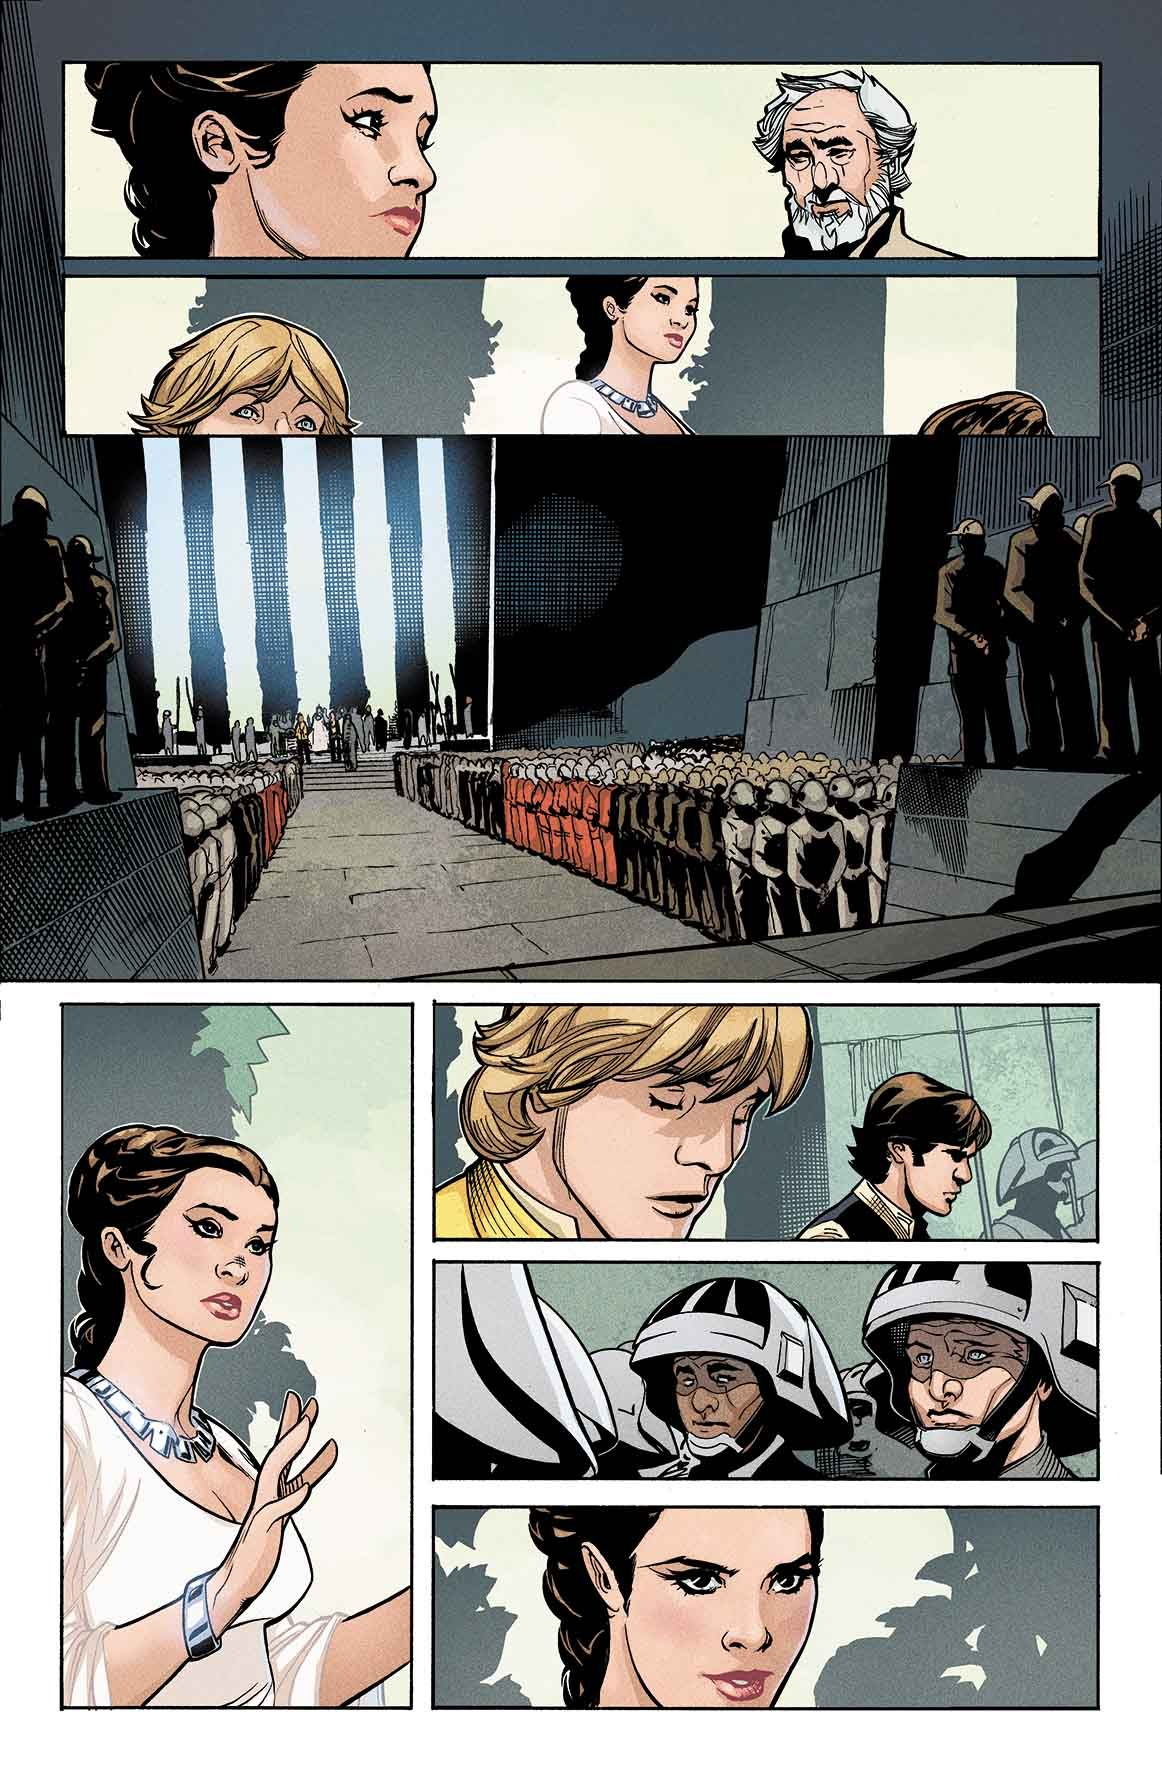 Star Wars: Princess Leia #1 - Exclusive Preview